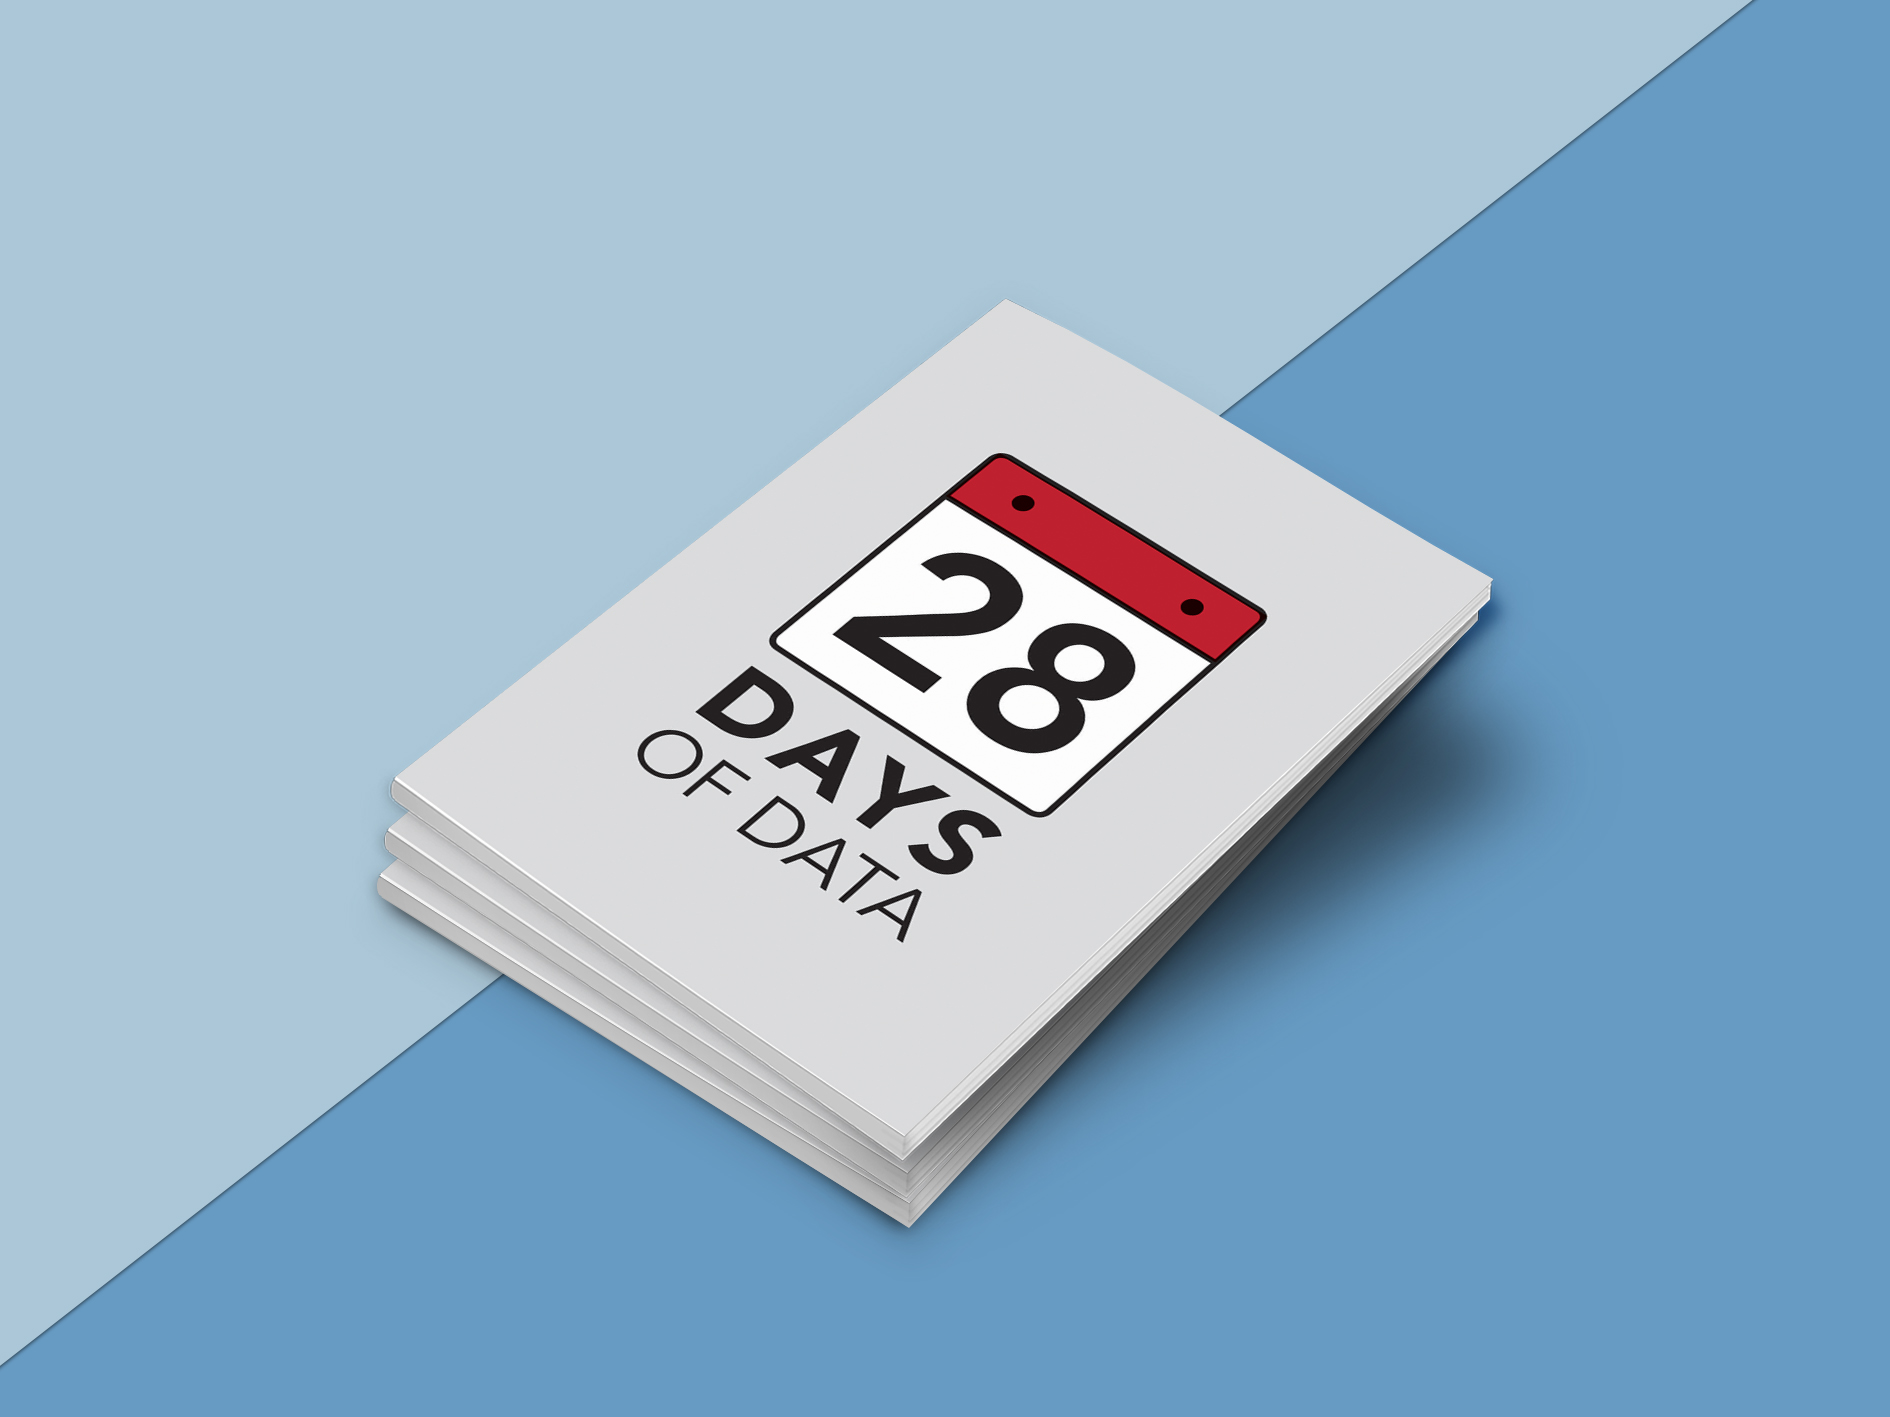 28 Days of Data is a comprehensive, dimensional look at data collection and using it to create a visual story.